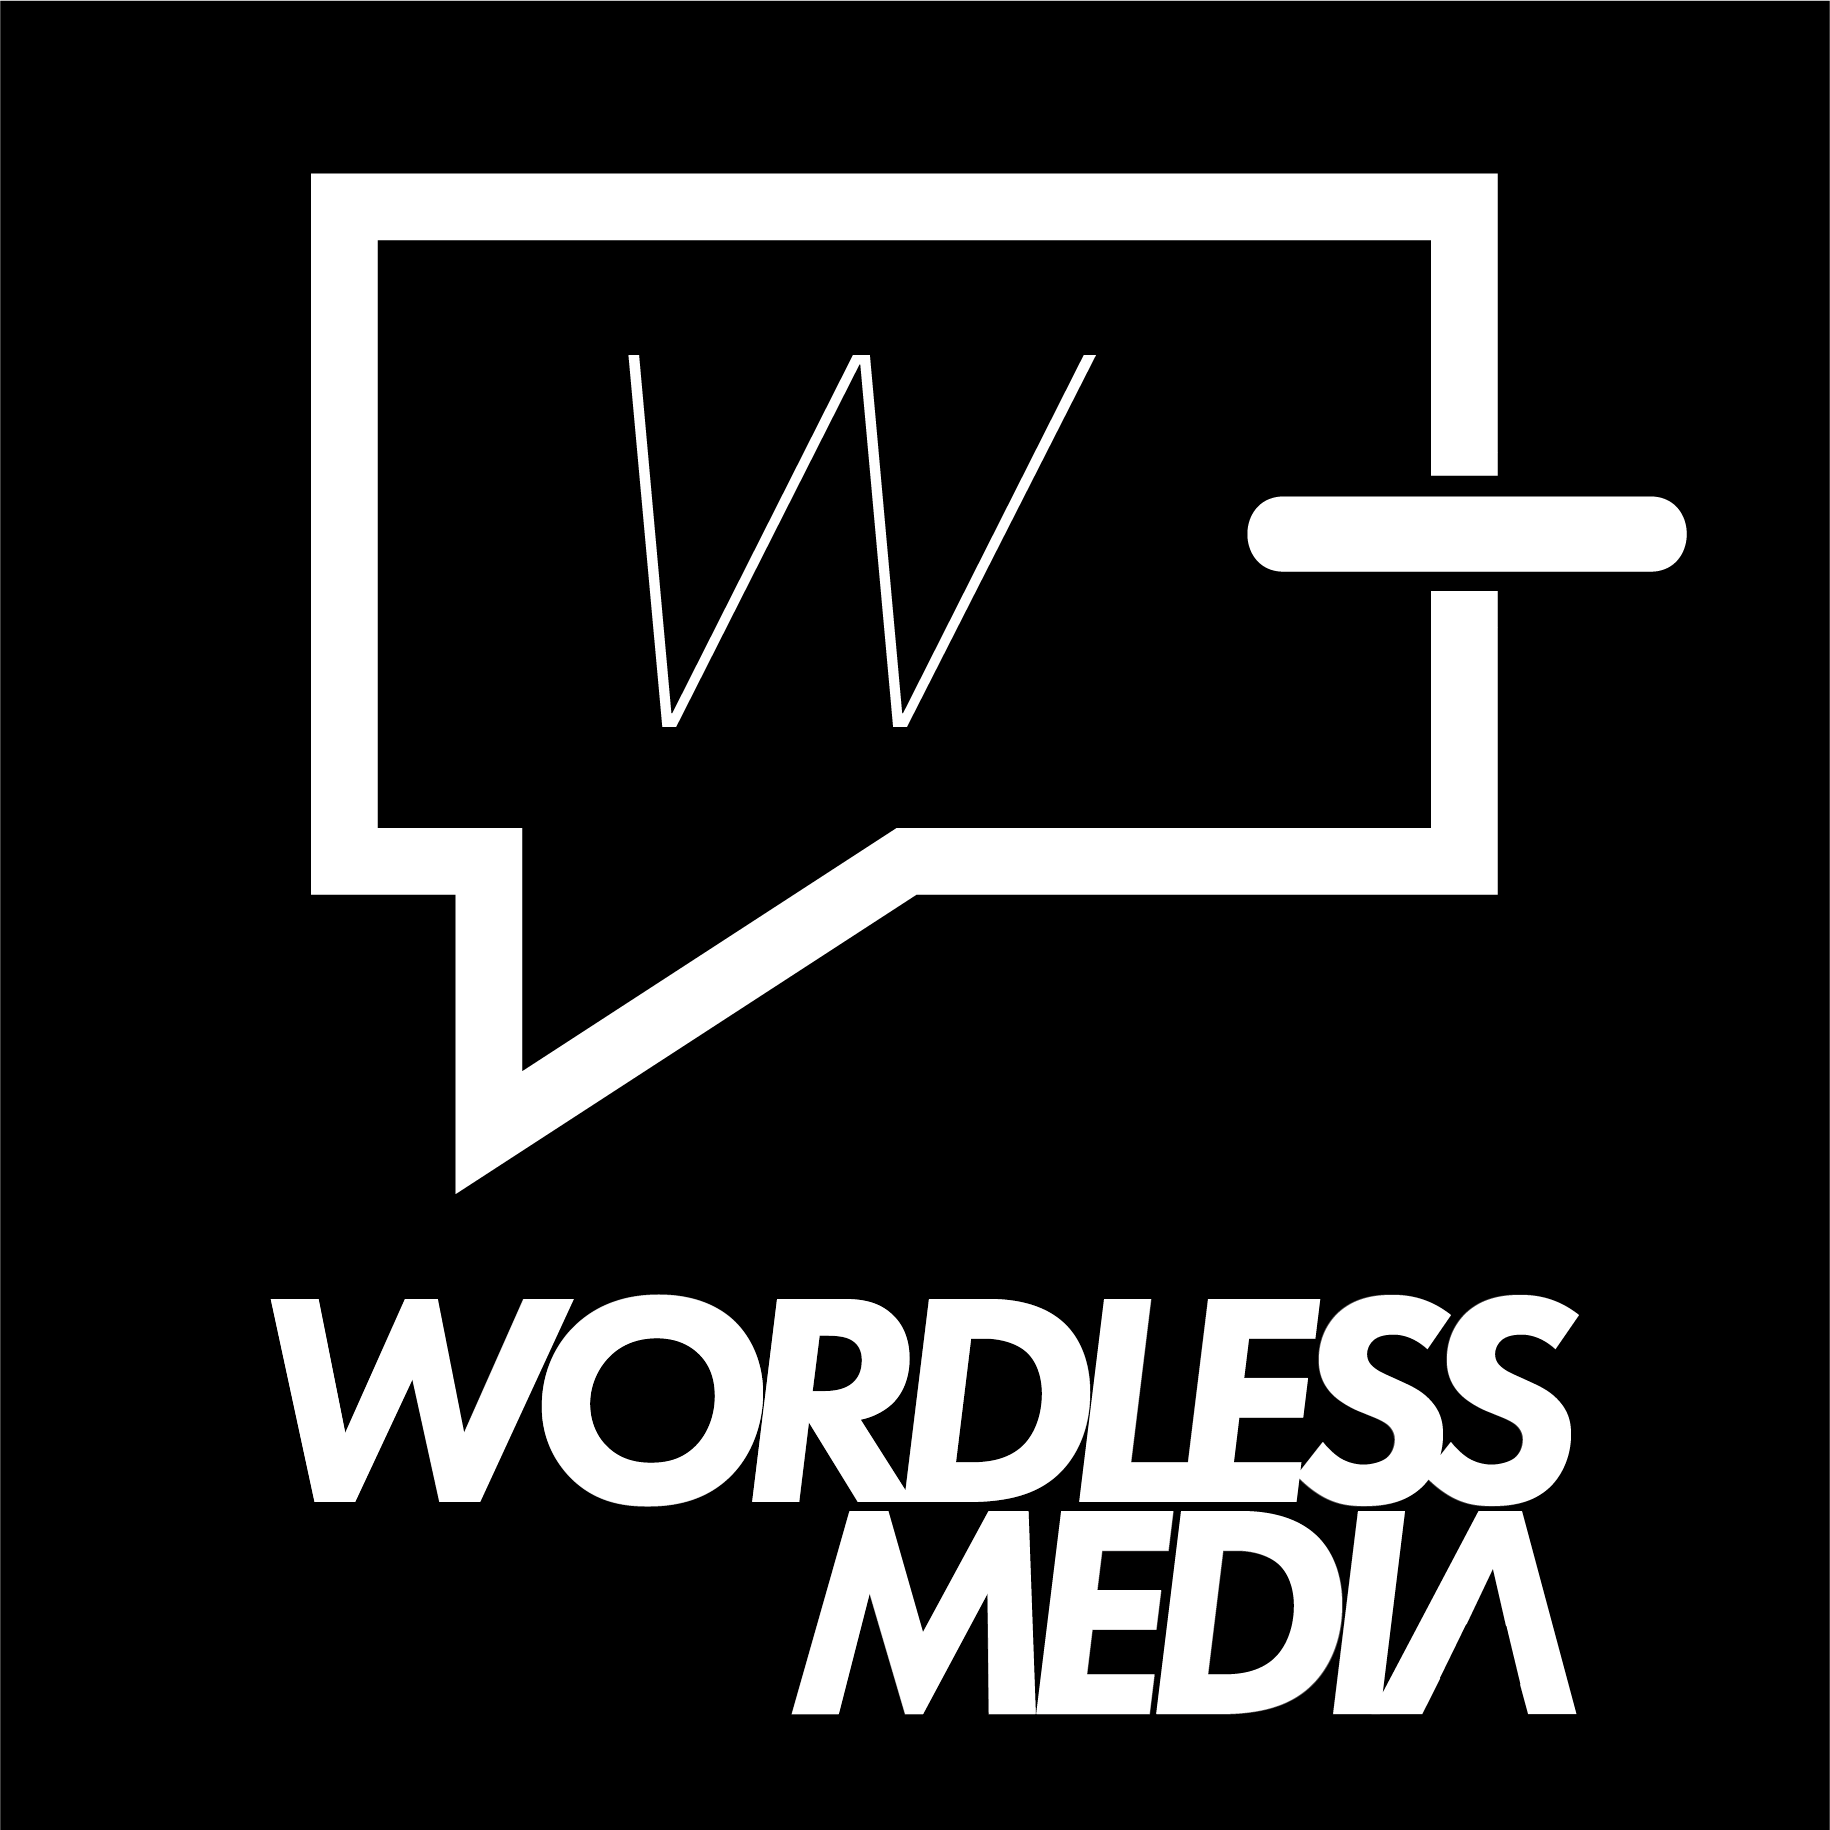 Wordless MEDIA